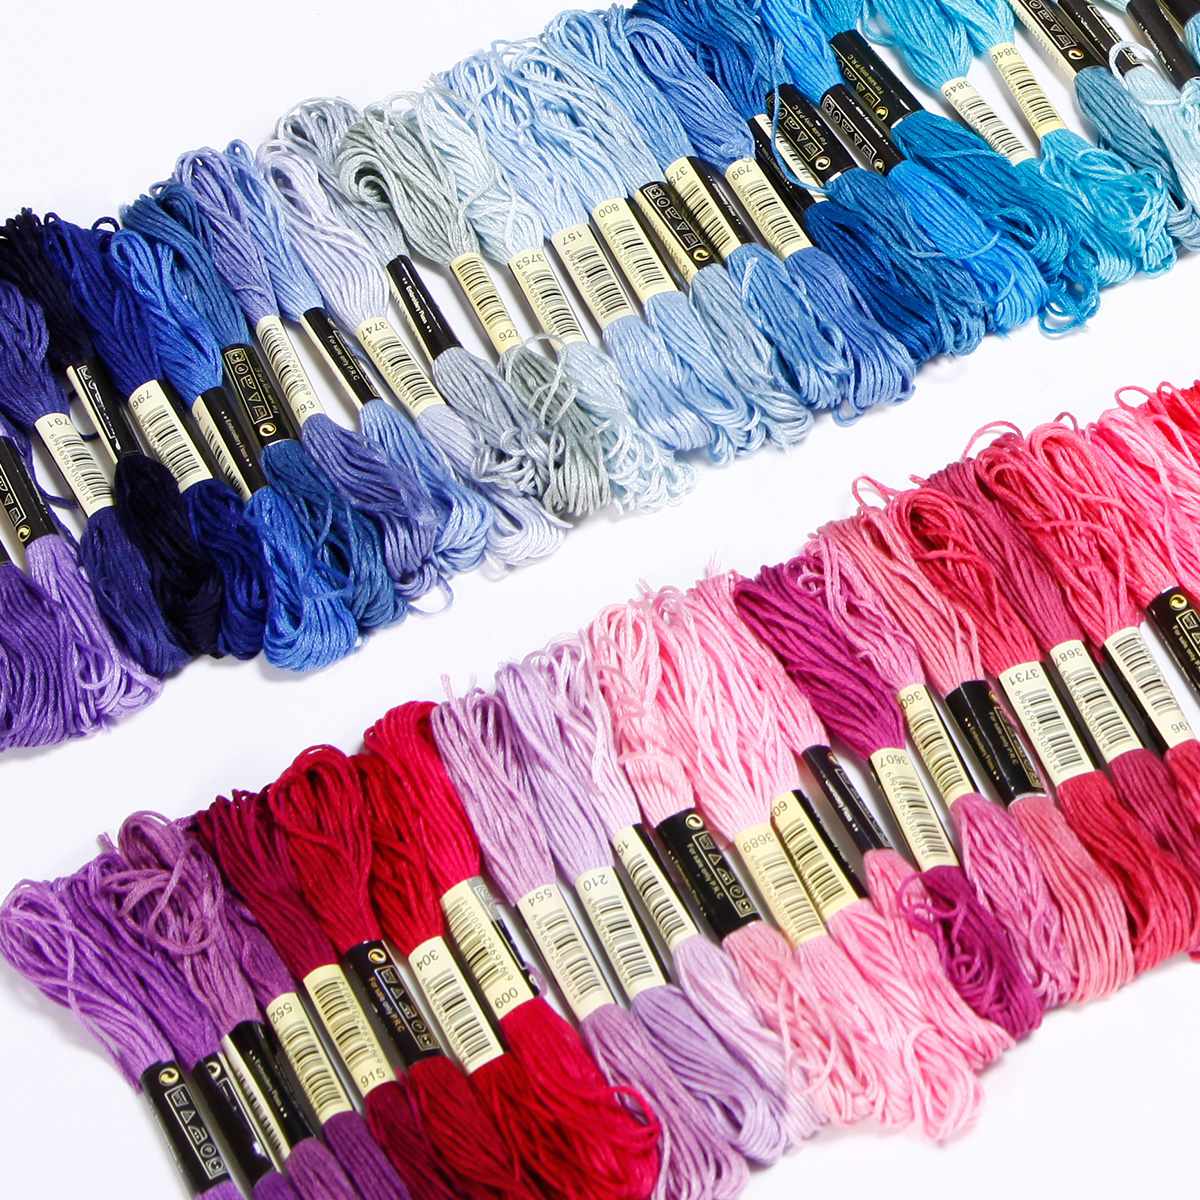 50-300-Color-Cross-Stitch-Thread-Embroidery-Floss-Sewing-Skeins-100-Cotton-Line thumbnail 12